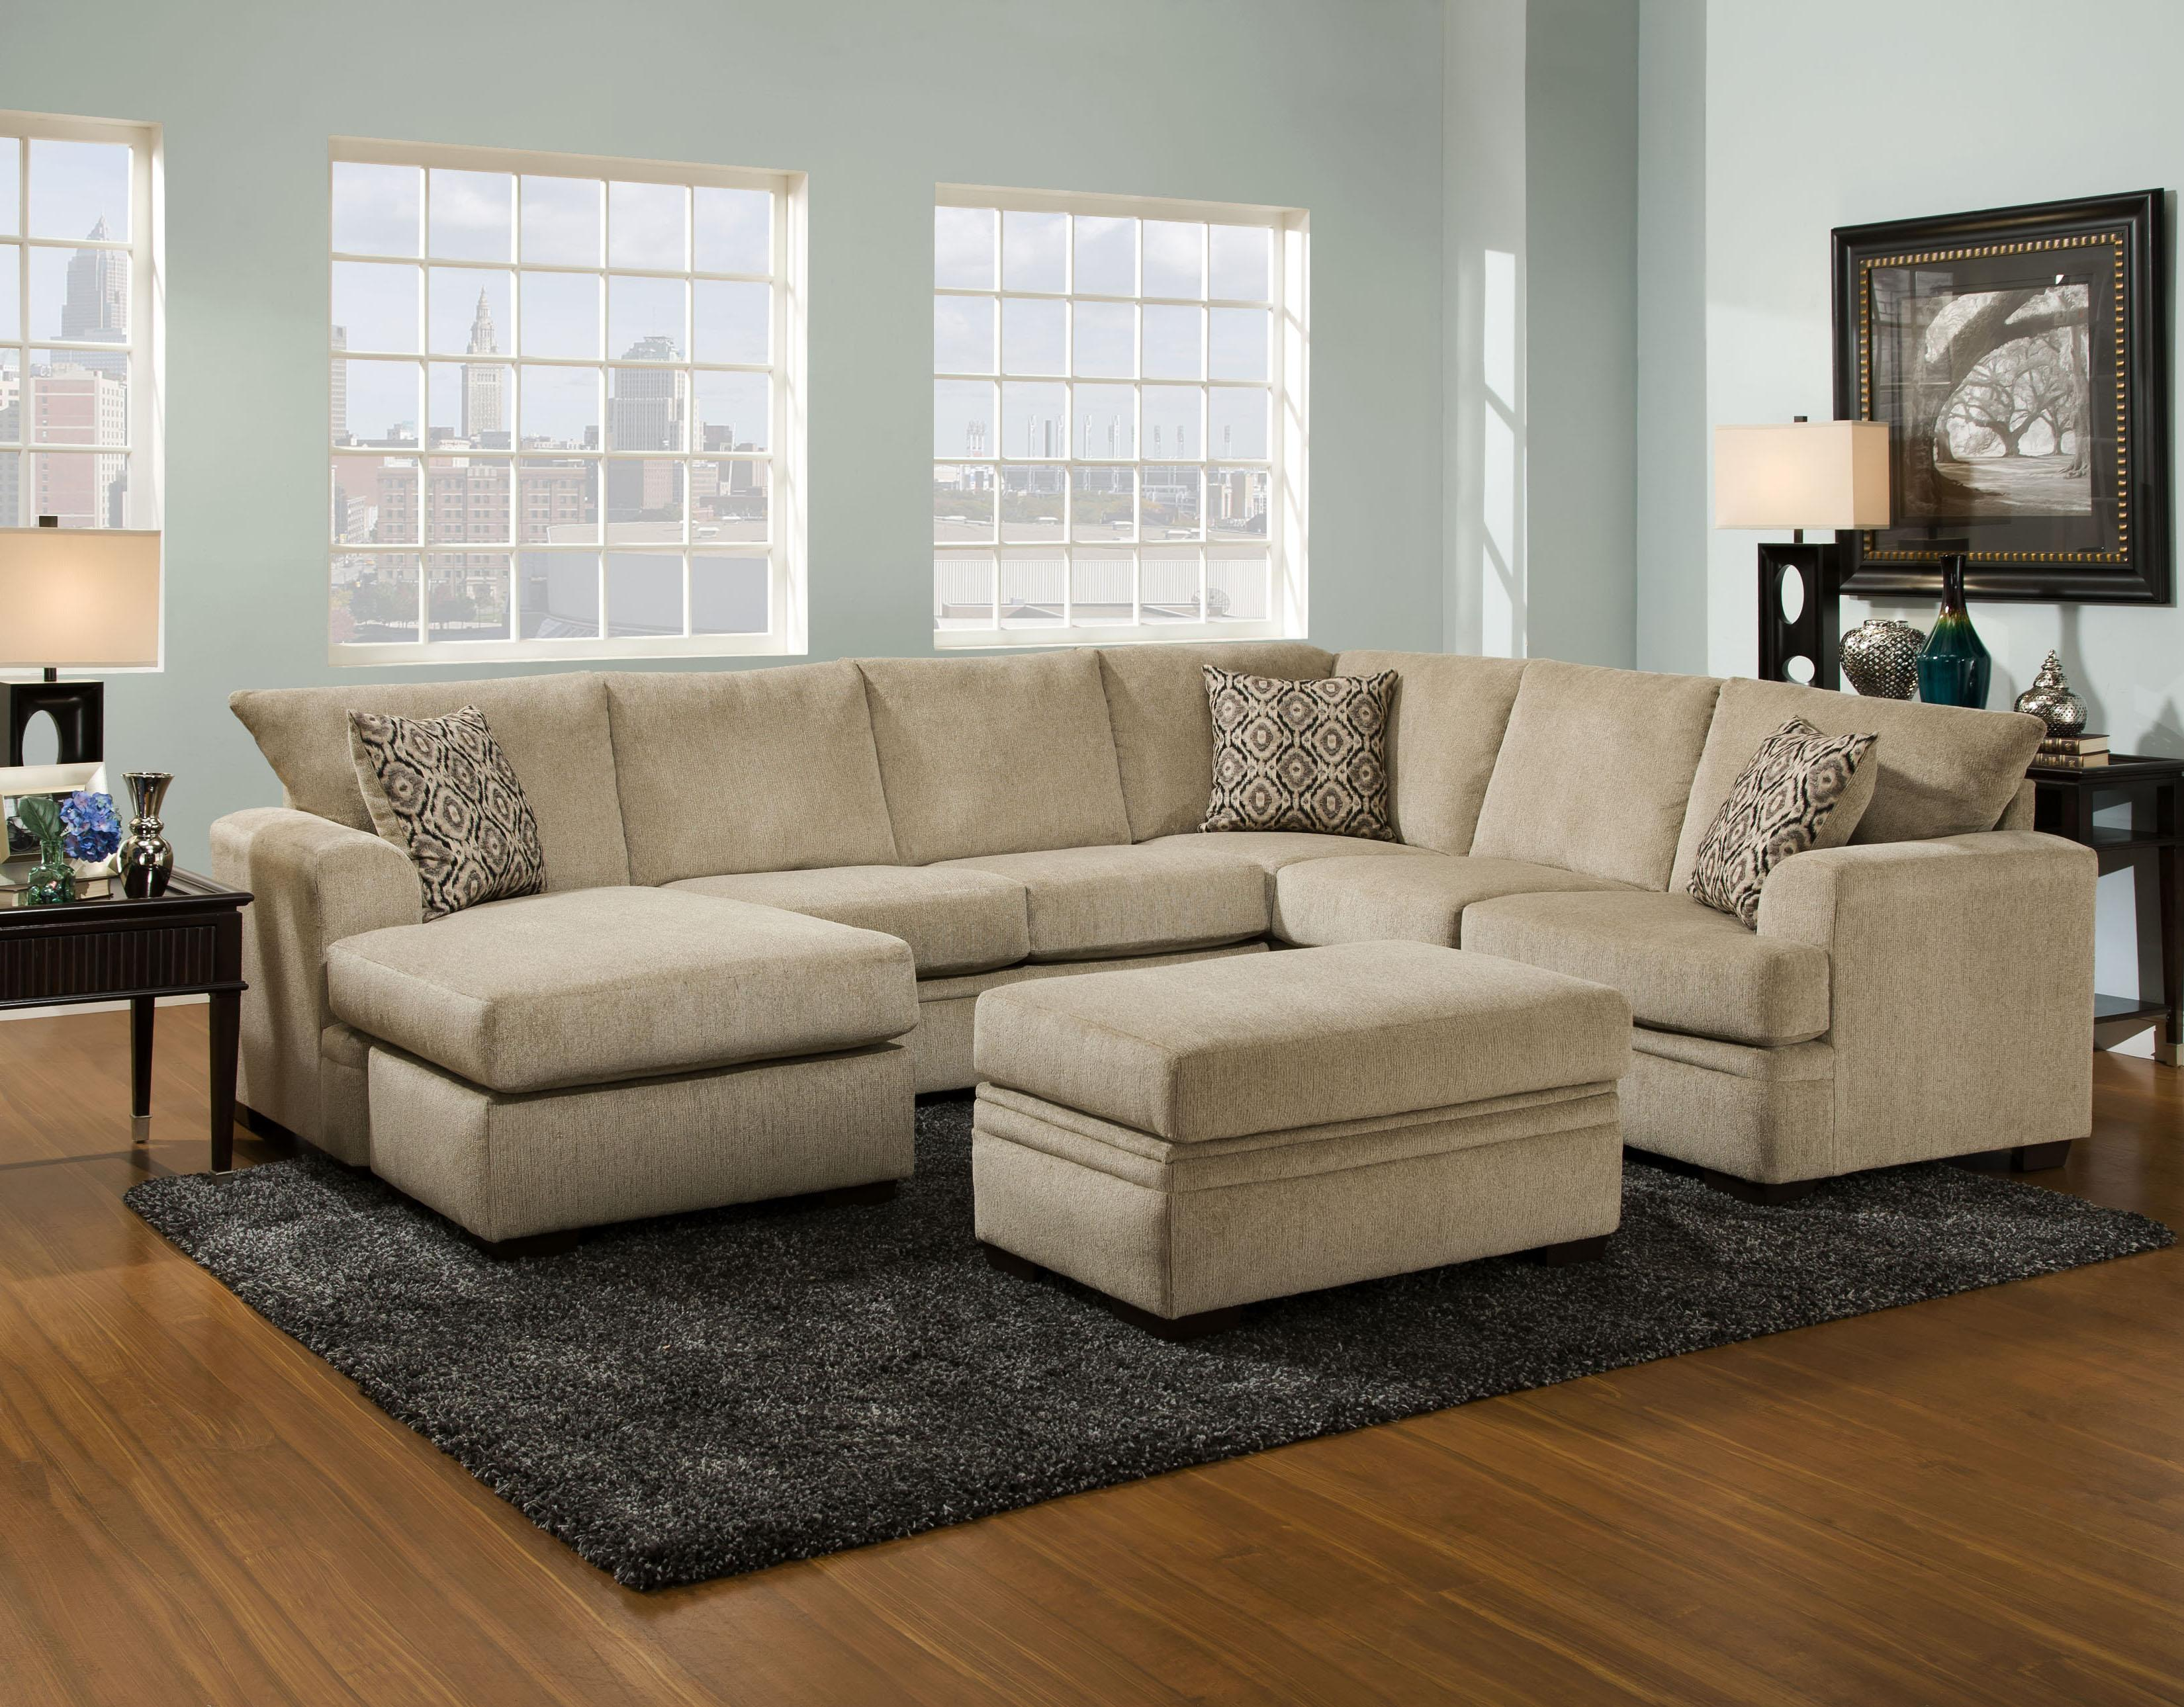 American furniture 6800 sectional sofa with left side for Furnish decorador de interiores